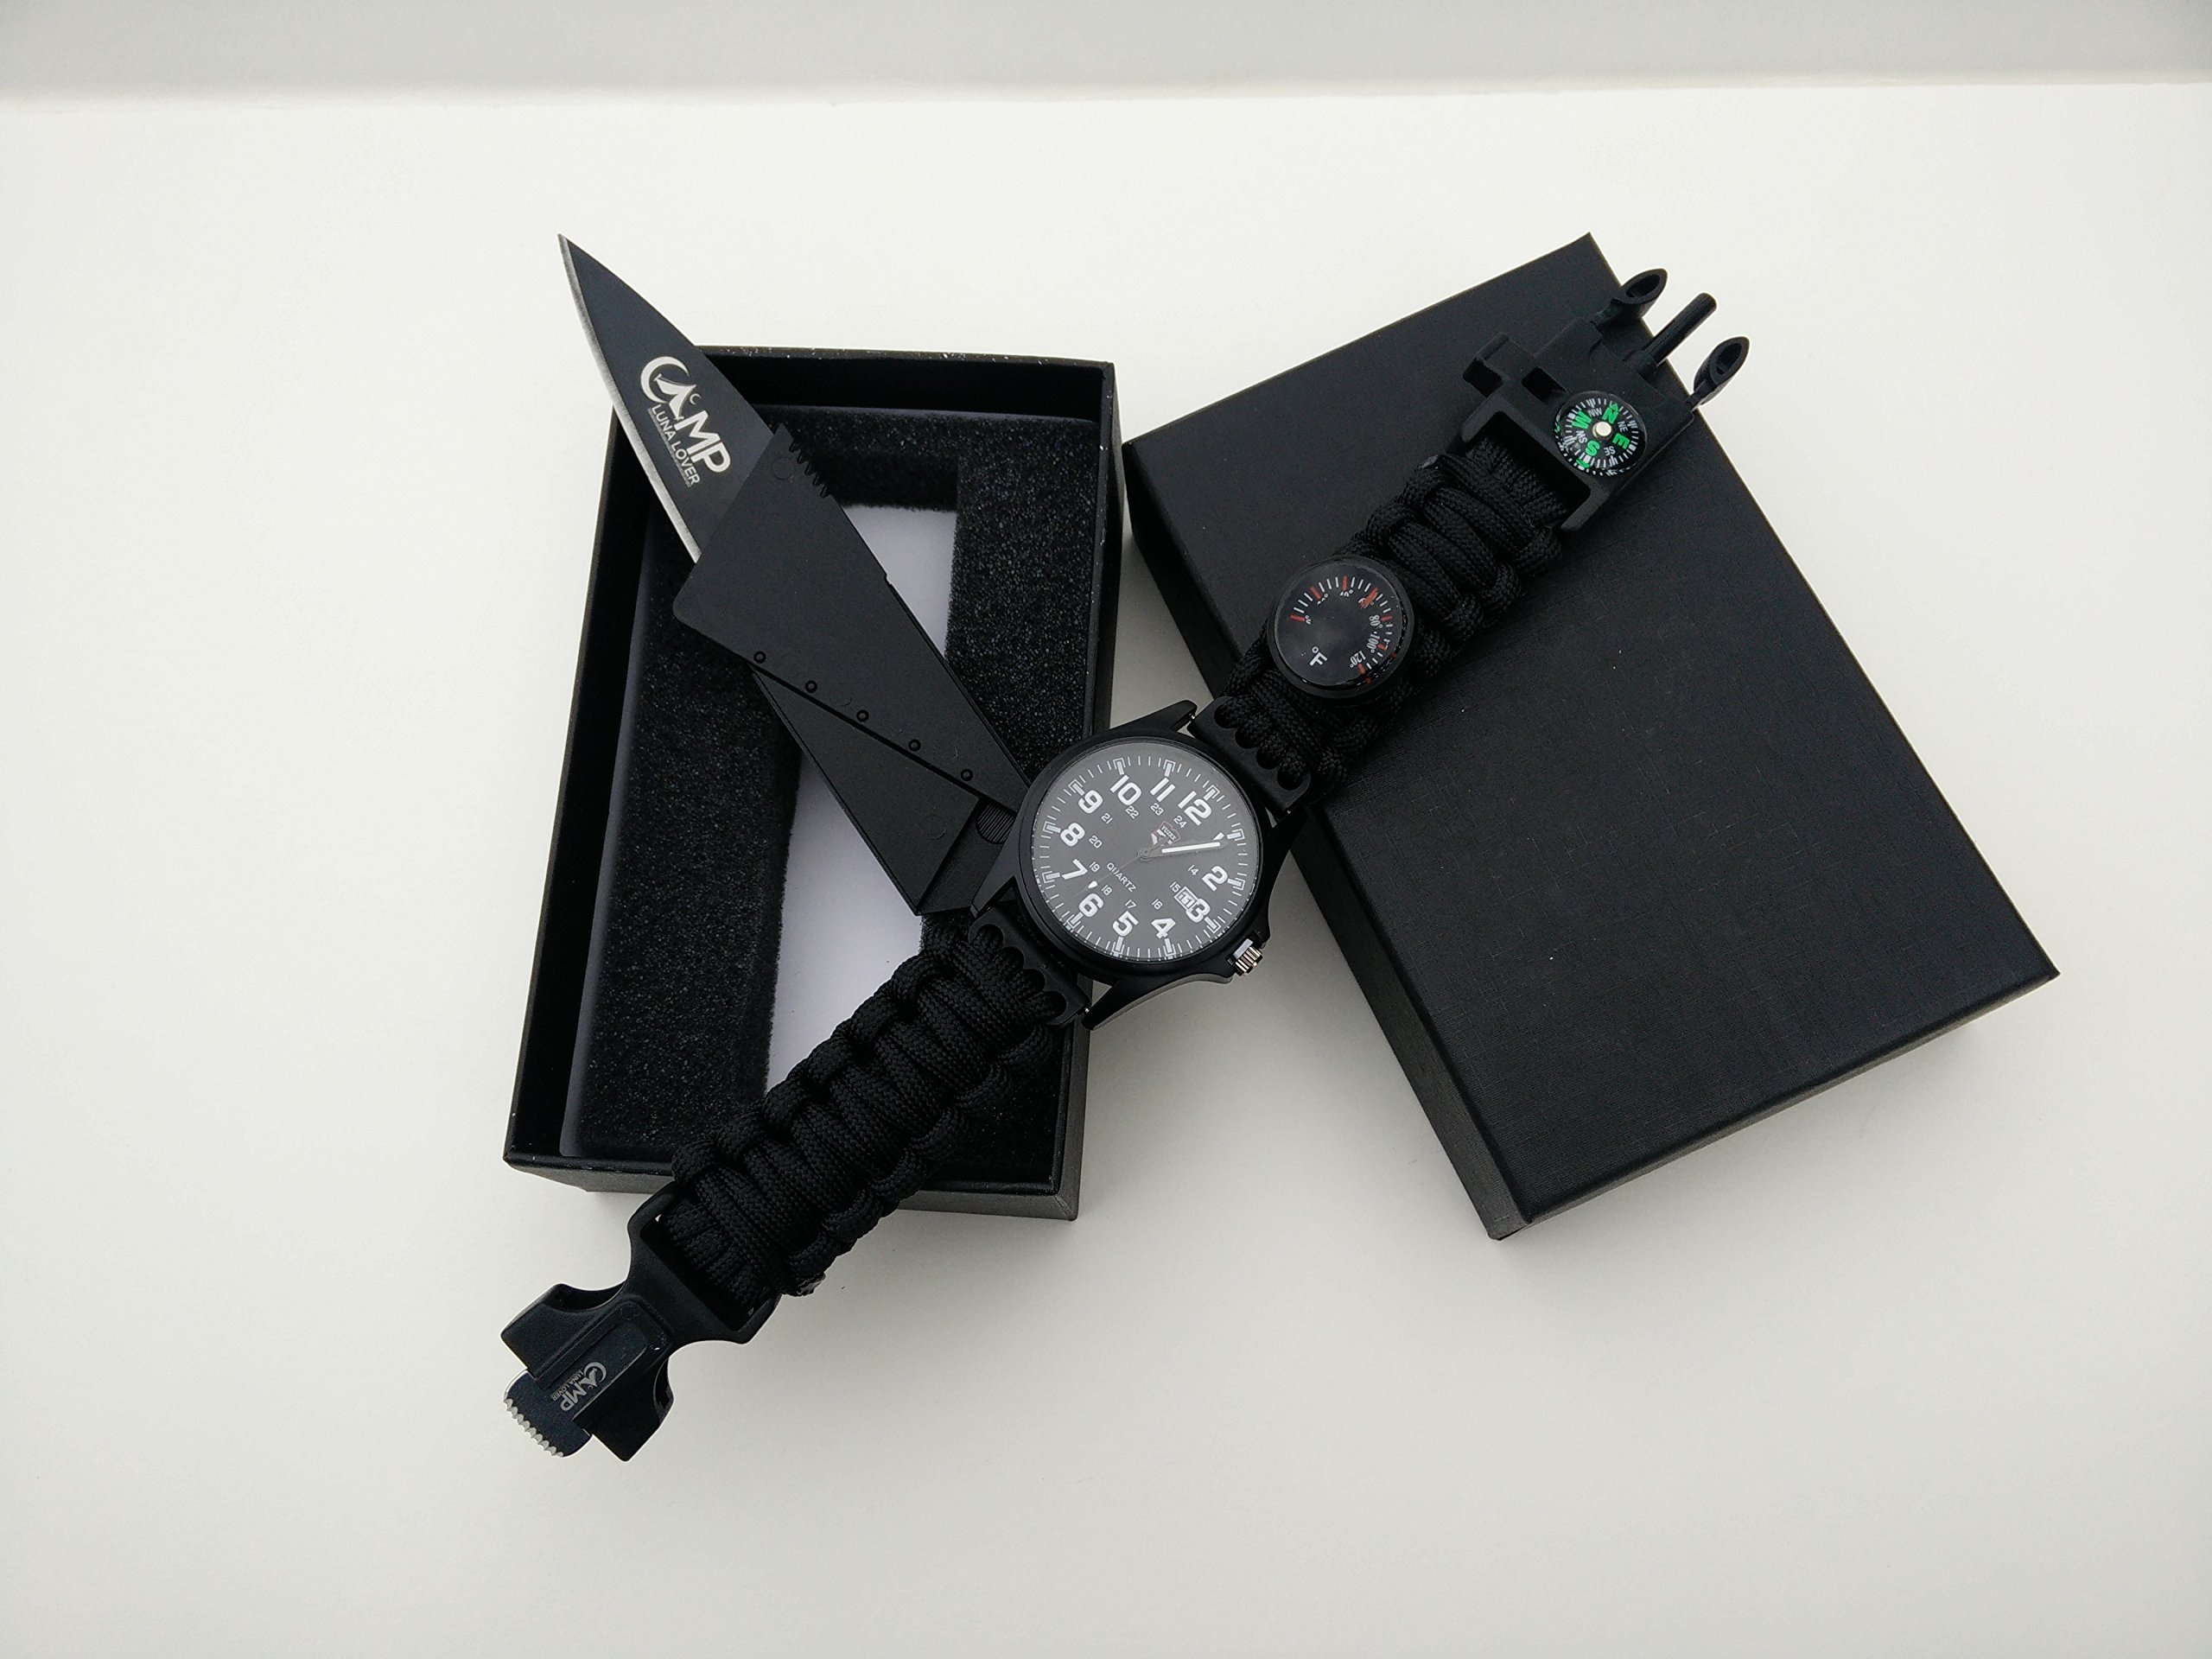 Paracord Survival Watch with FREE credit card knife by Camp Luna Lover